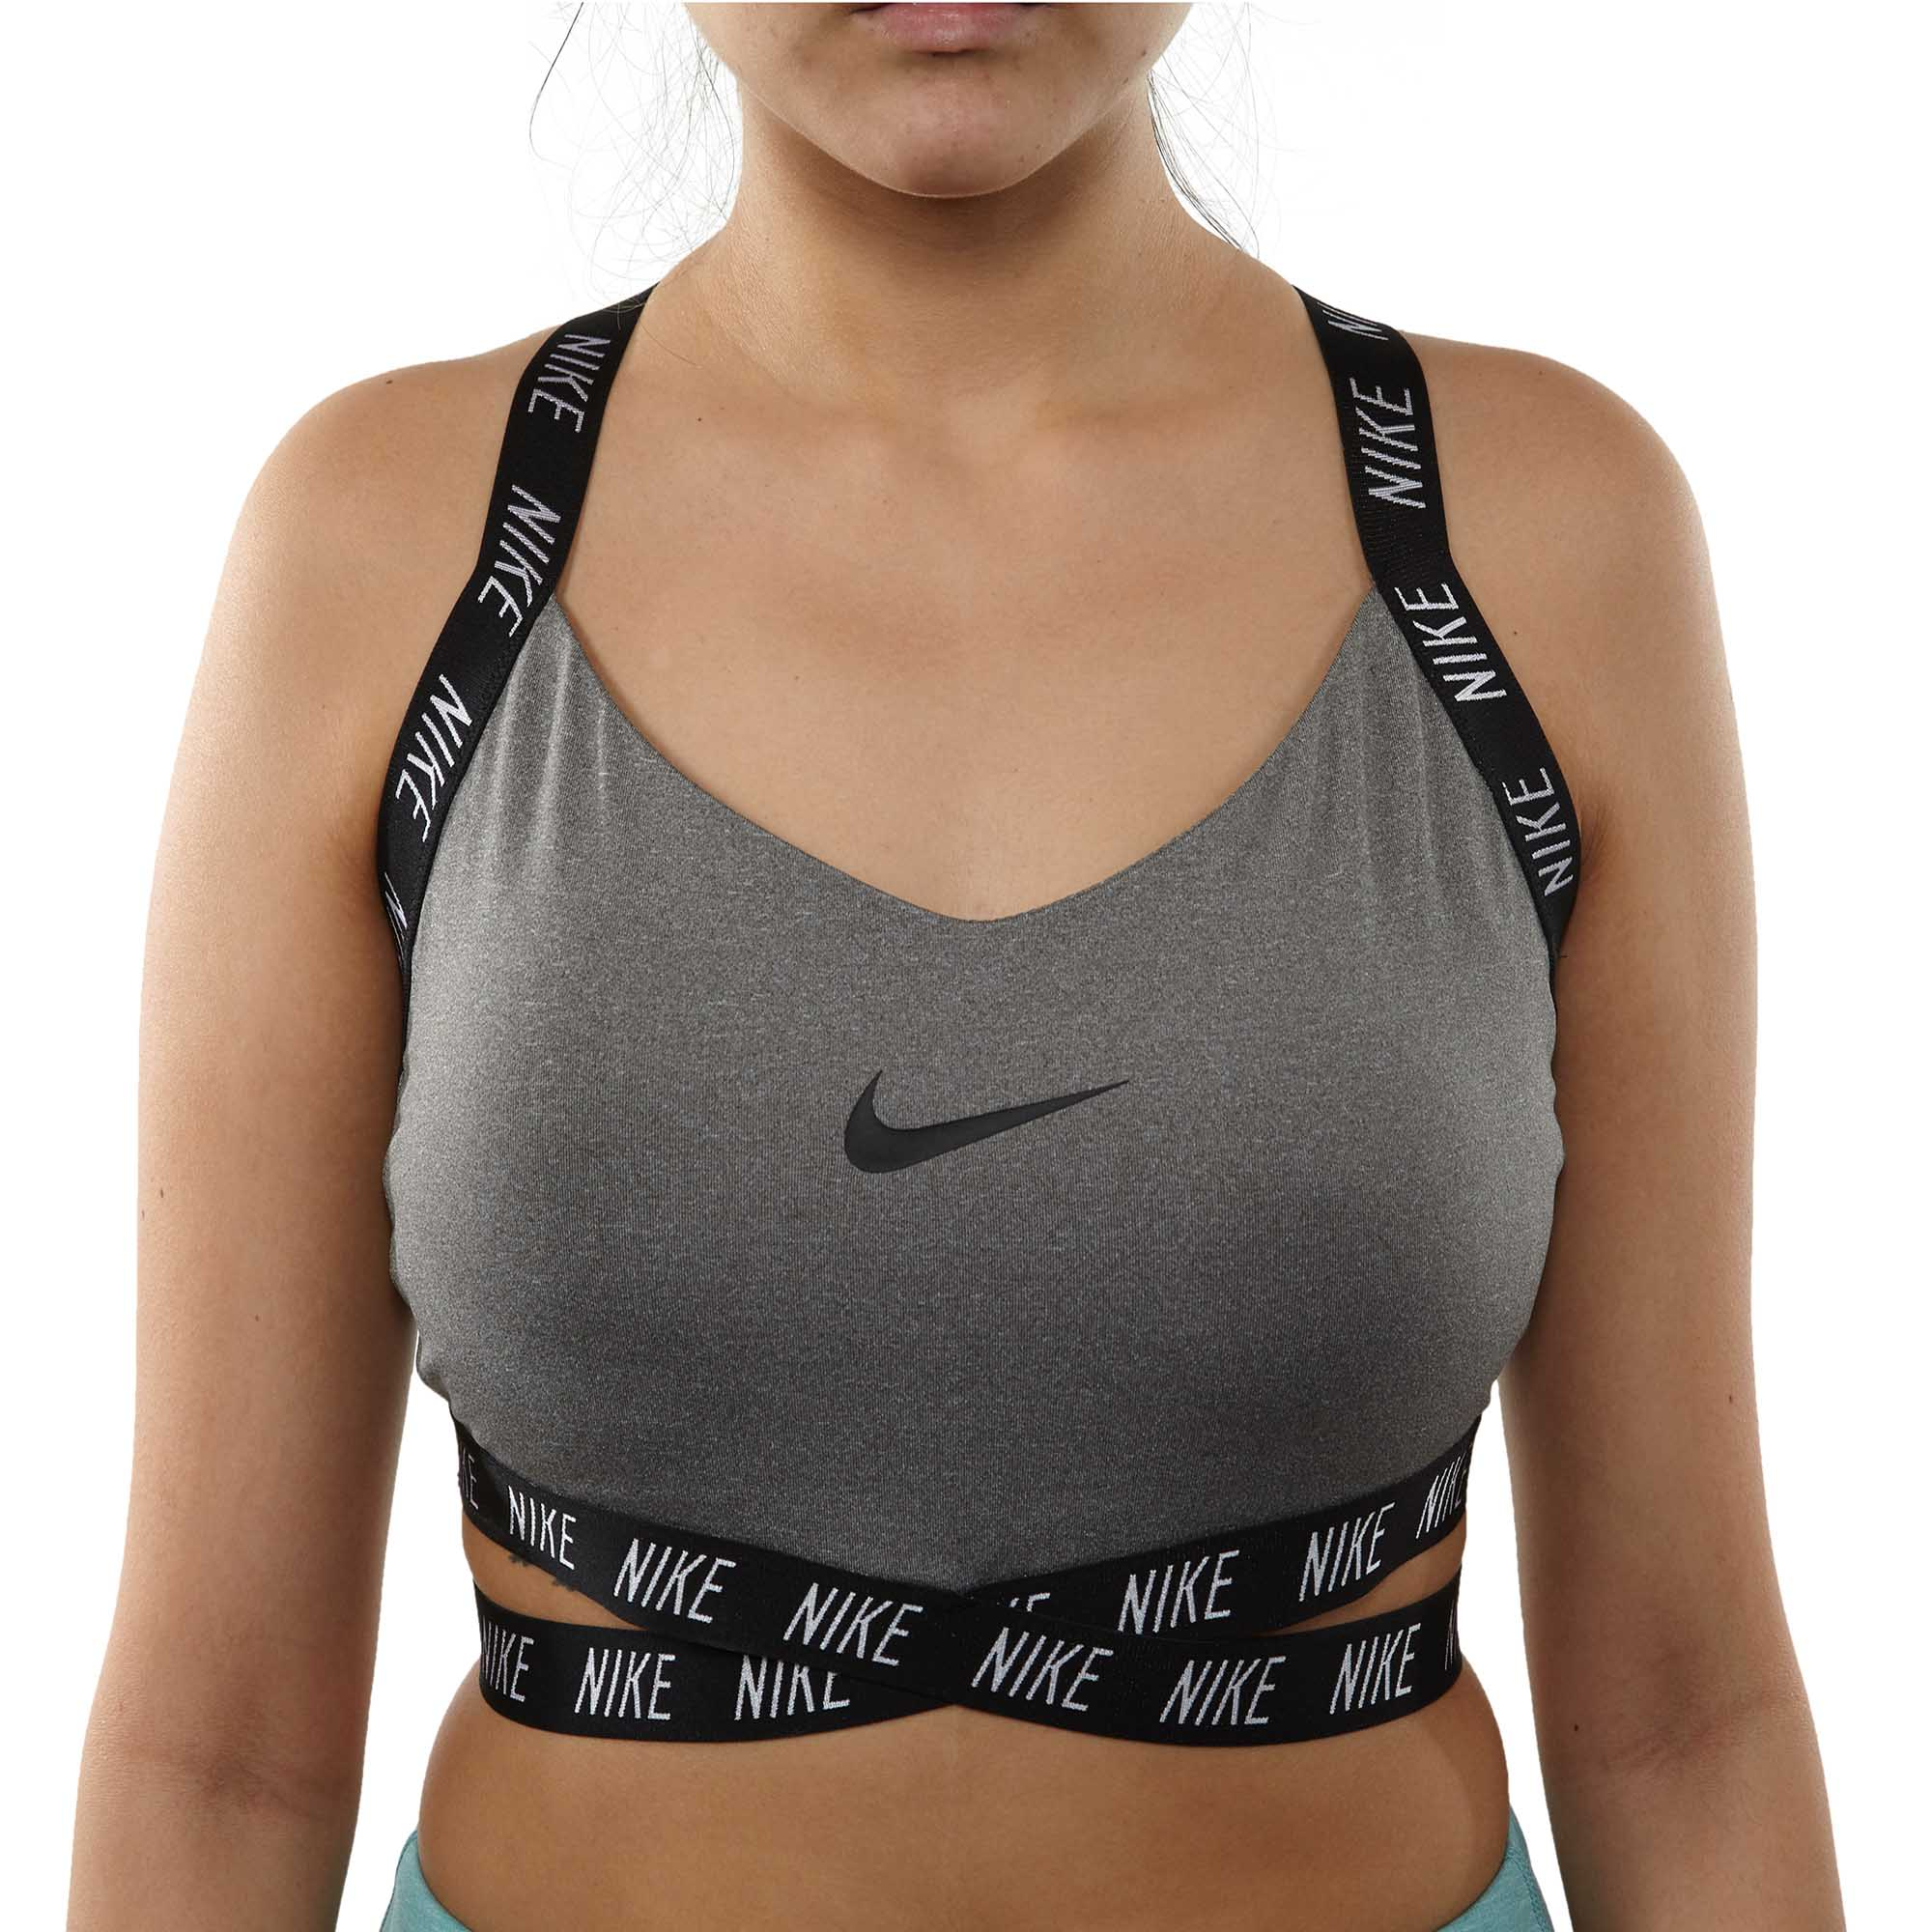 9ae3cce090090 Details about Nike Womens Dri-fit Indy Logo Sports Bras AQ0918-091